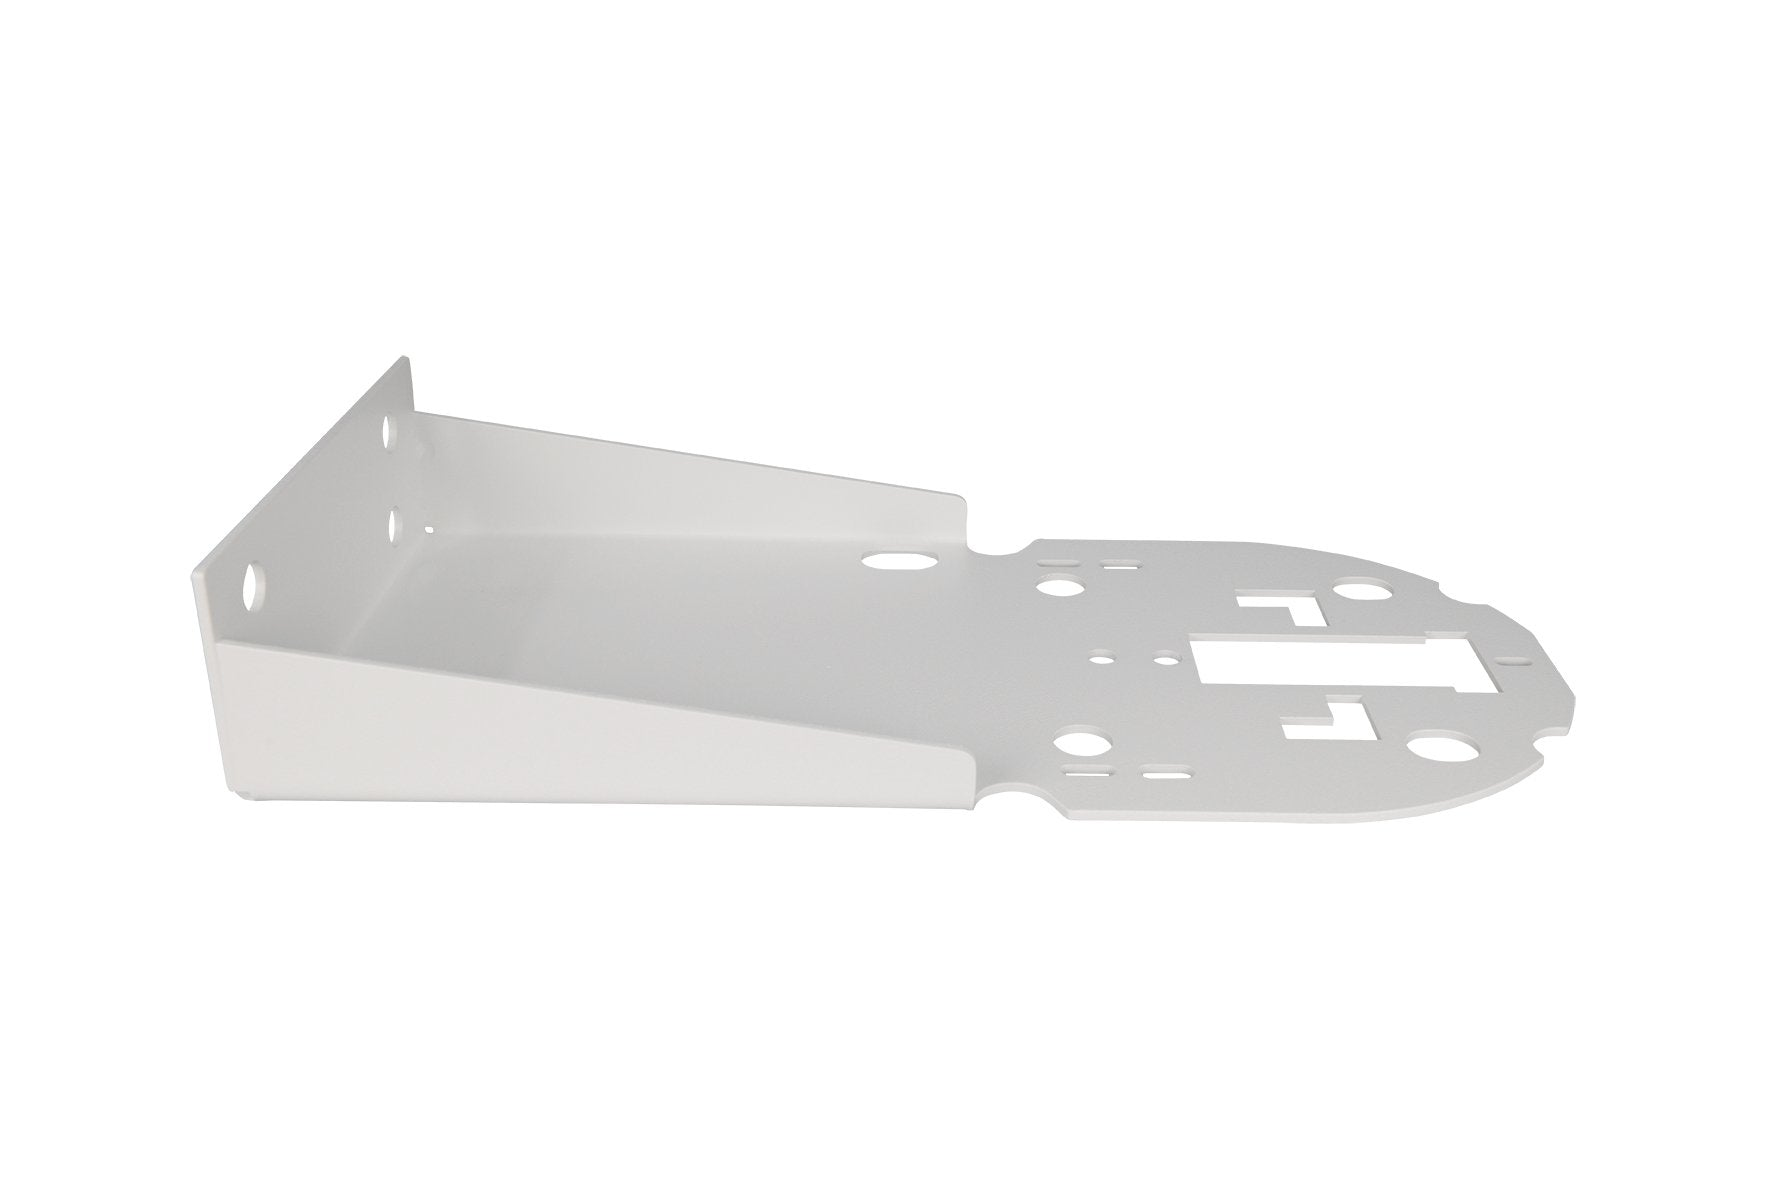 P100, P200, and P400 PTZ Wall Mount White